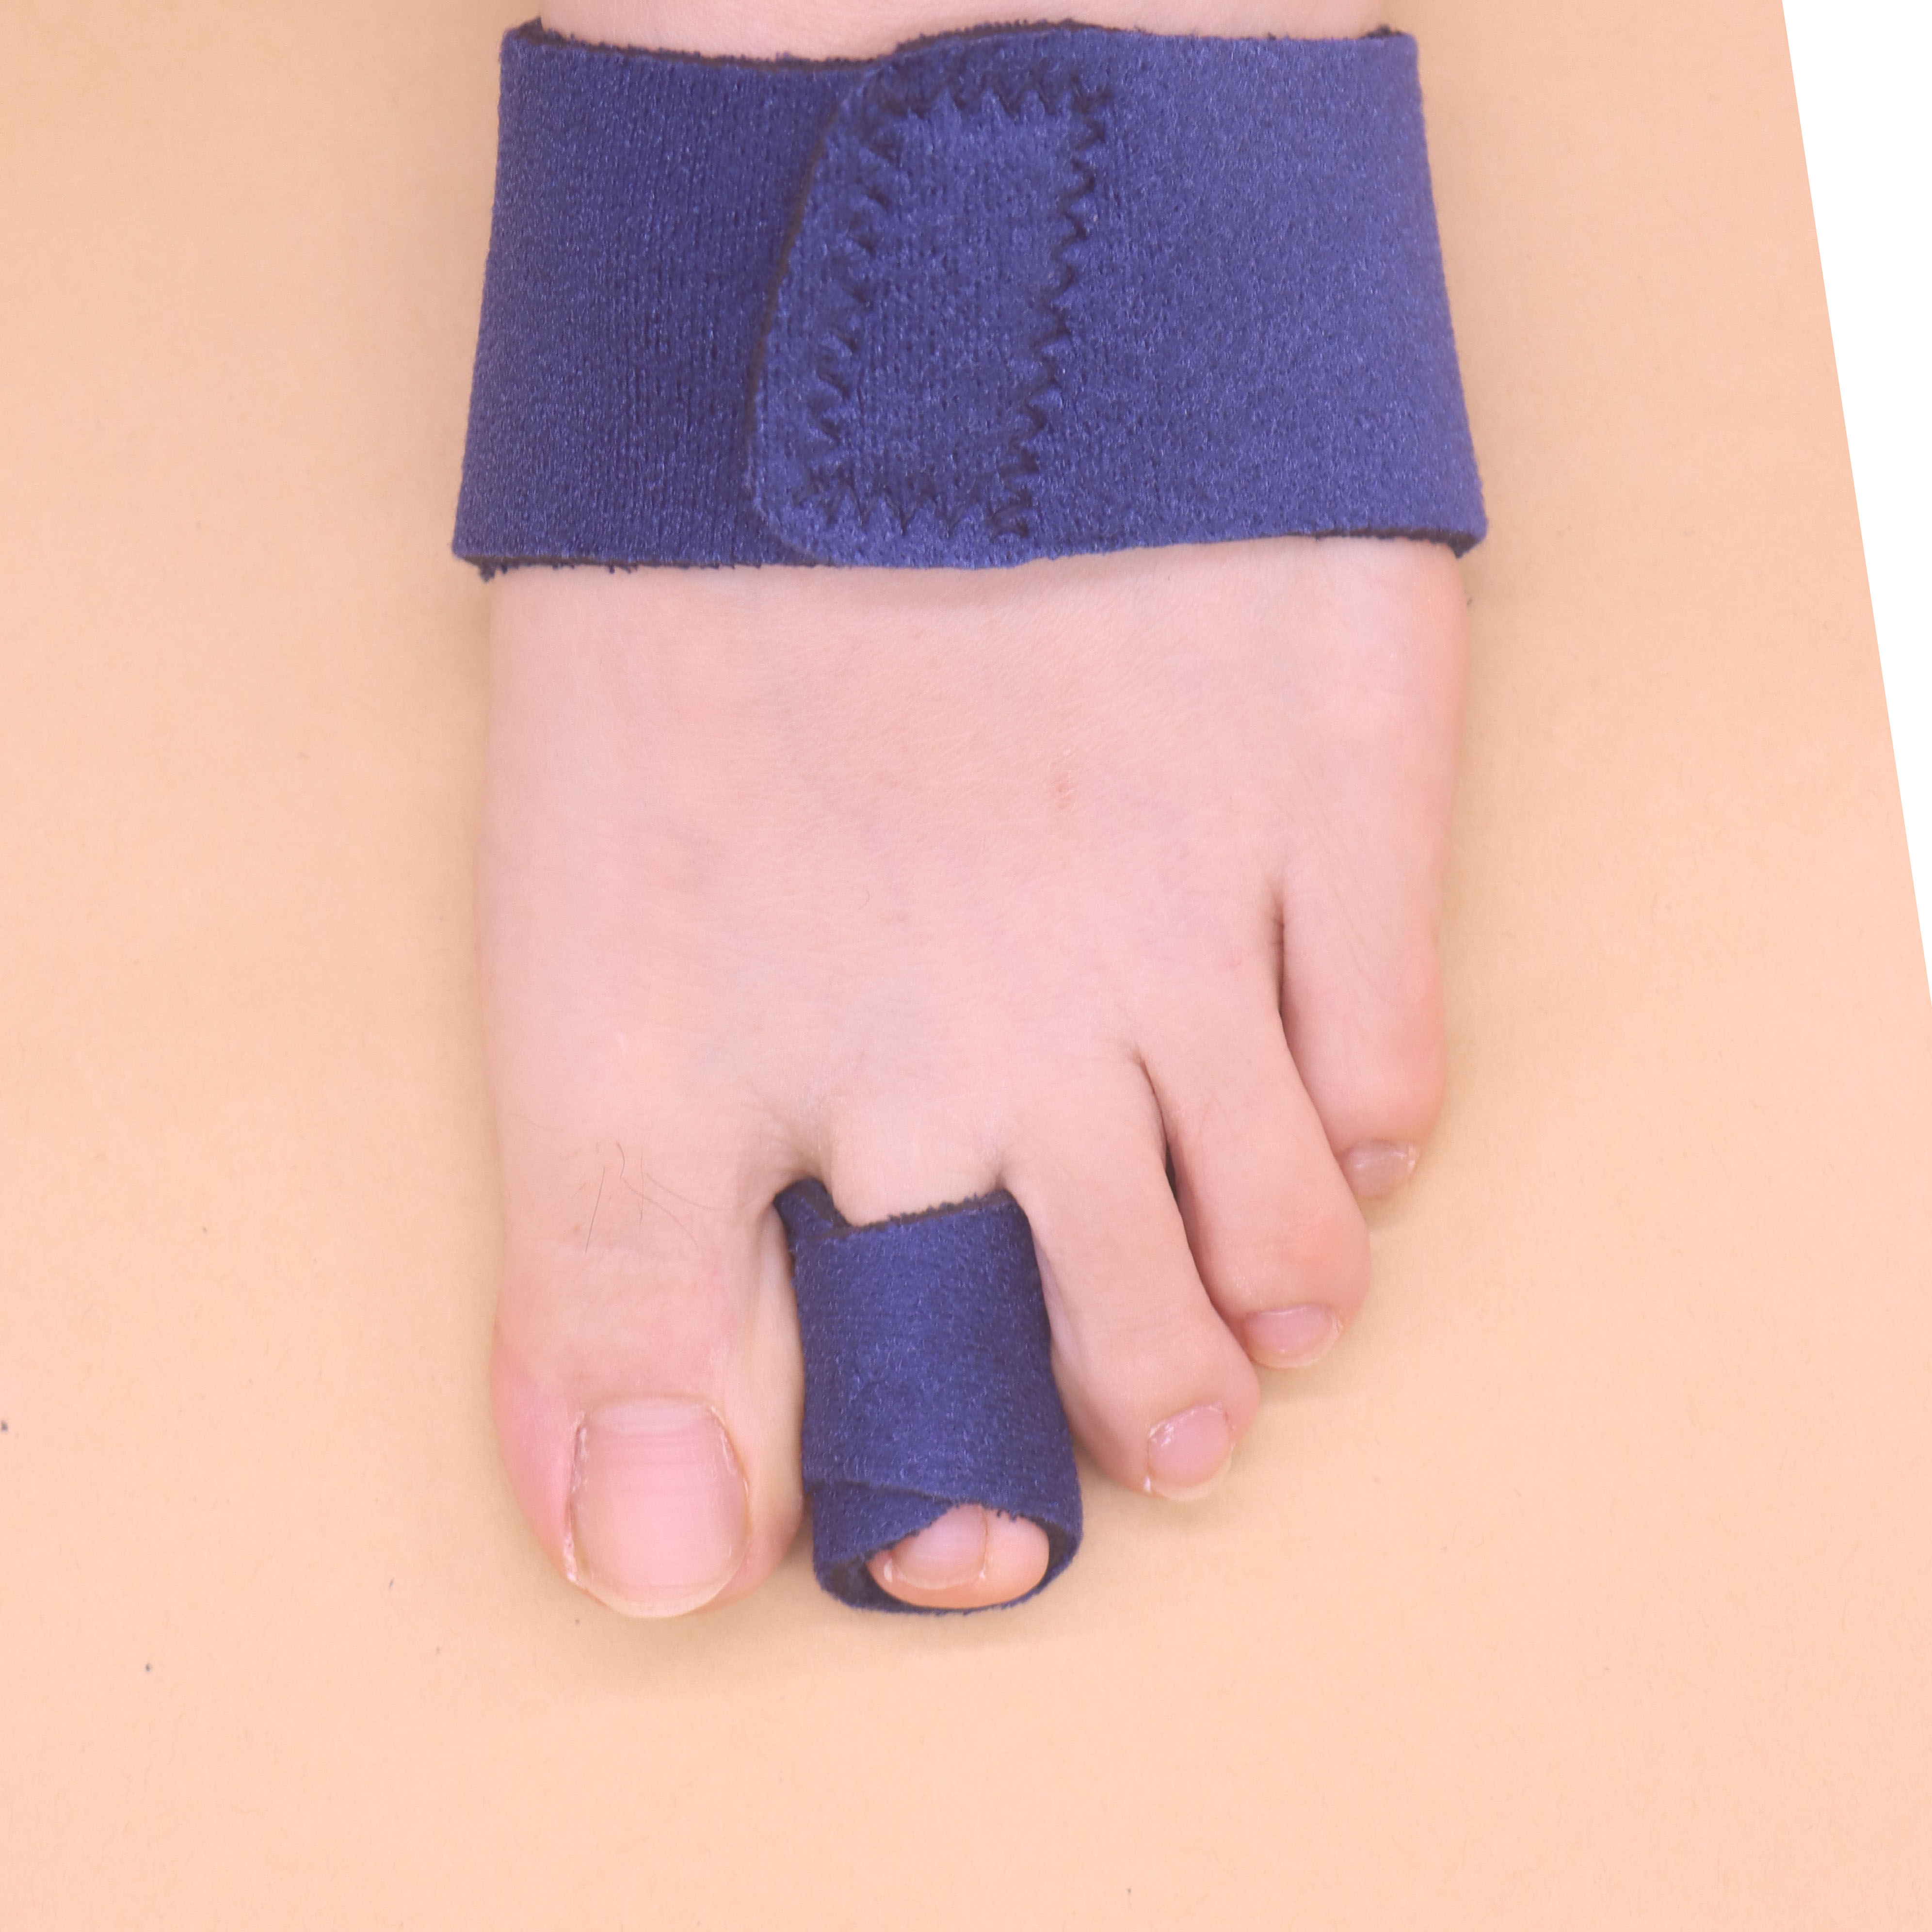 Forefinger upwarping fracture fixation two toe bending appliance drop toe hammer overlap arch toe claw toe